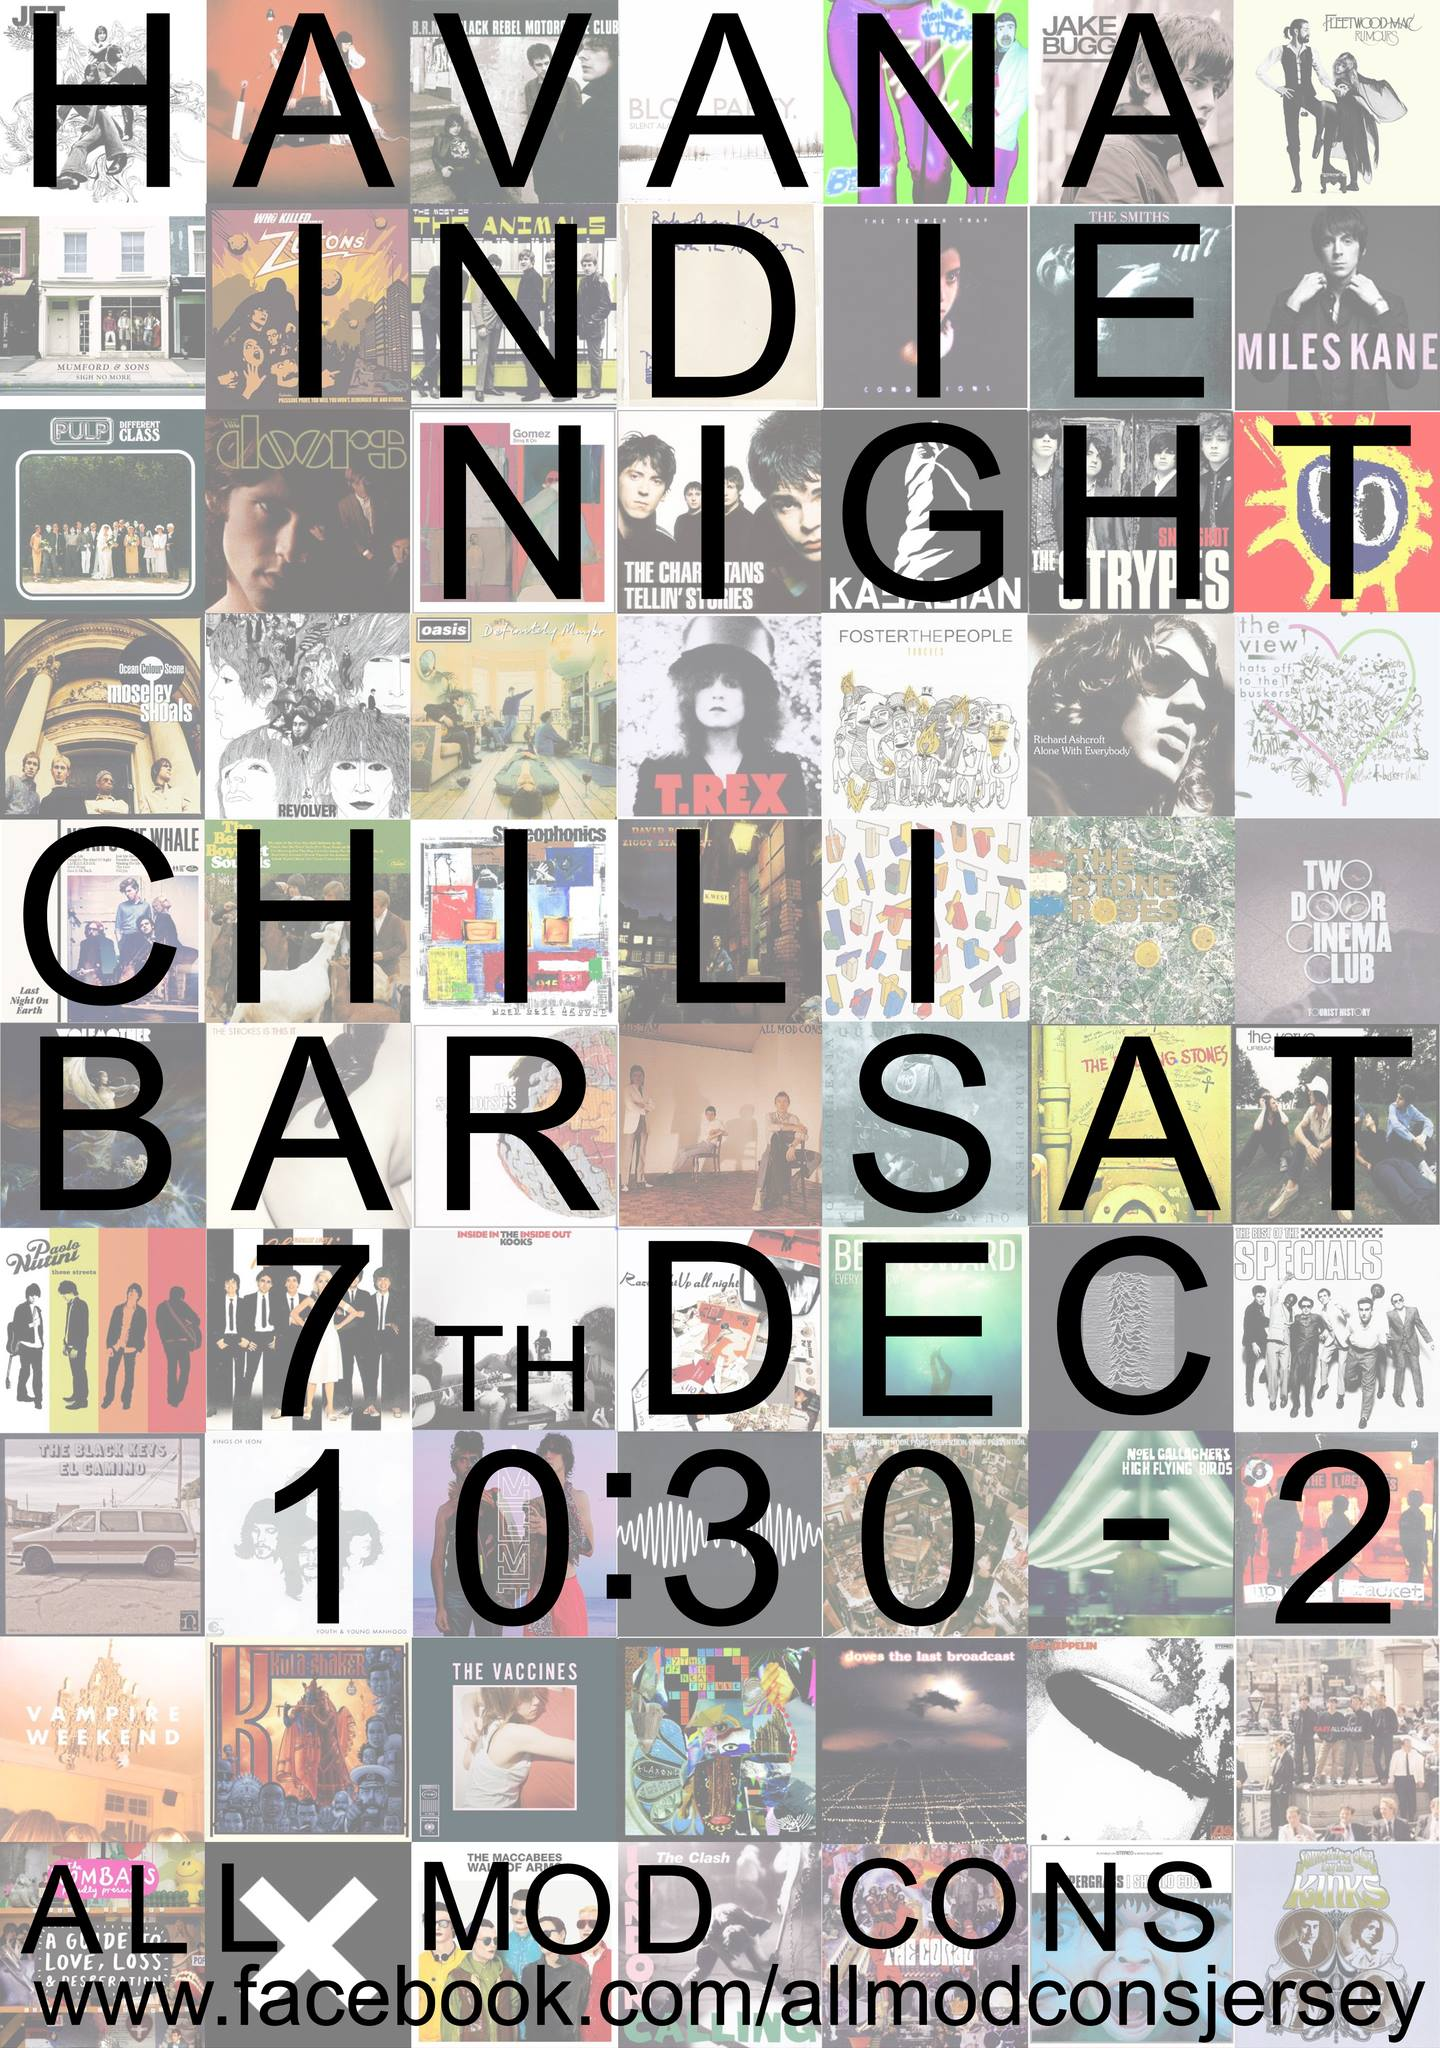 All Mod Cons – A Night of Indie Rock and Roll